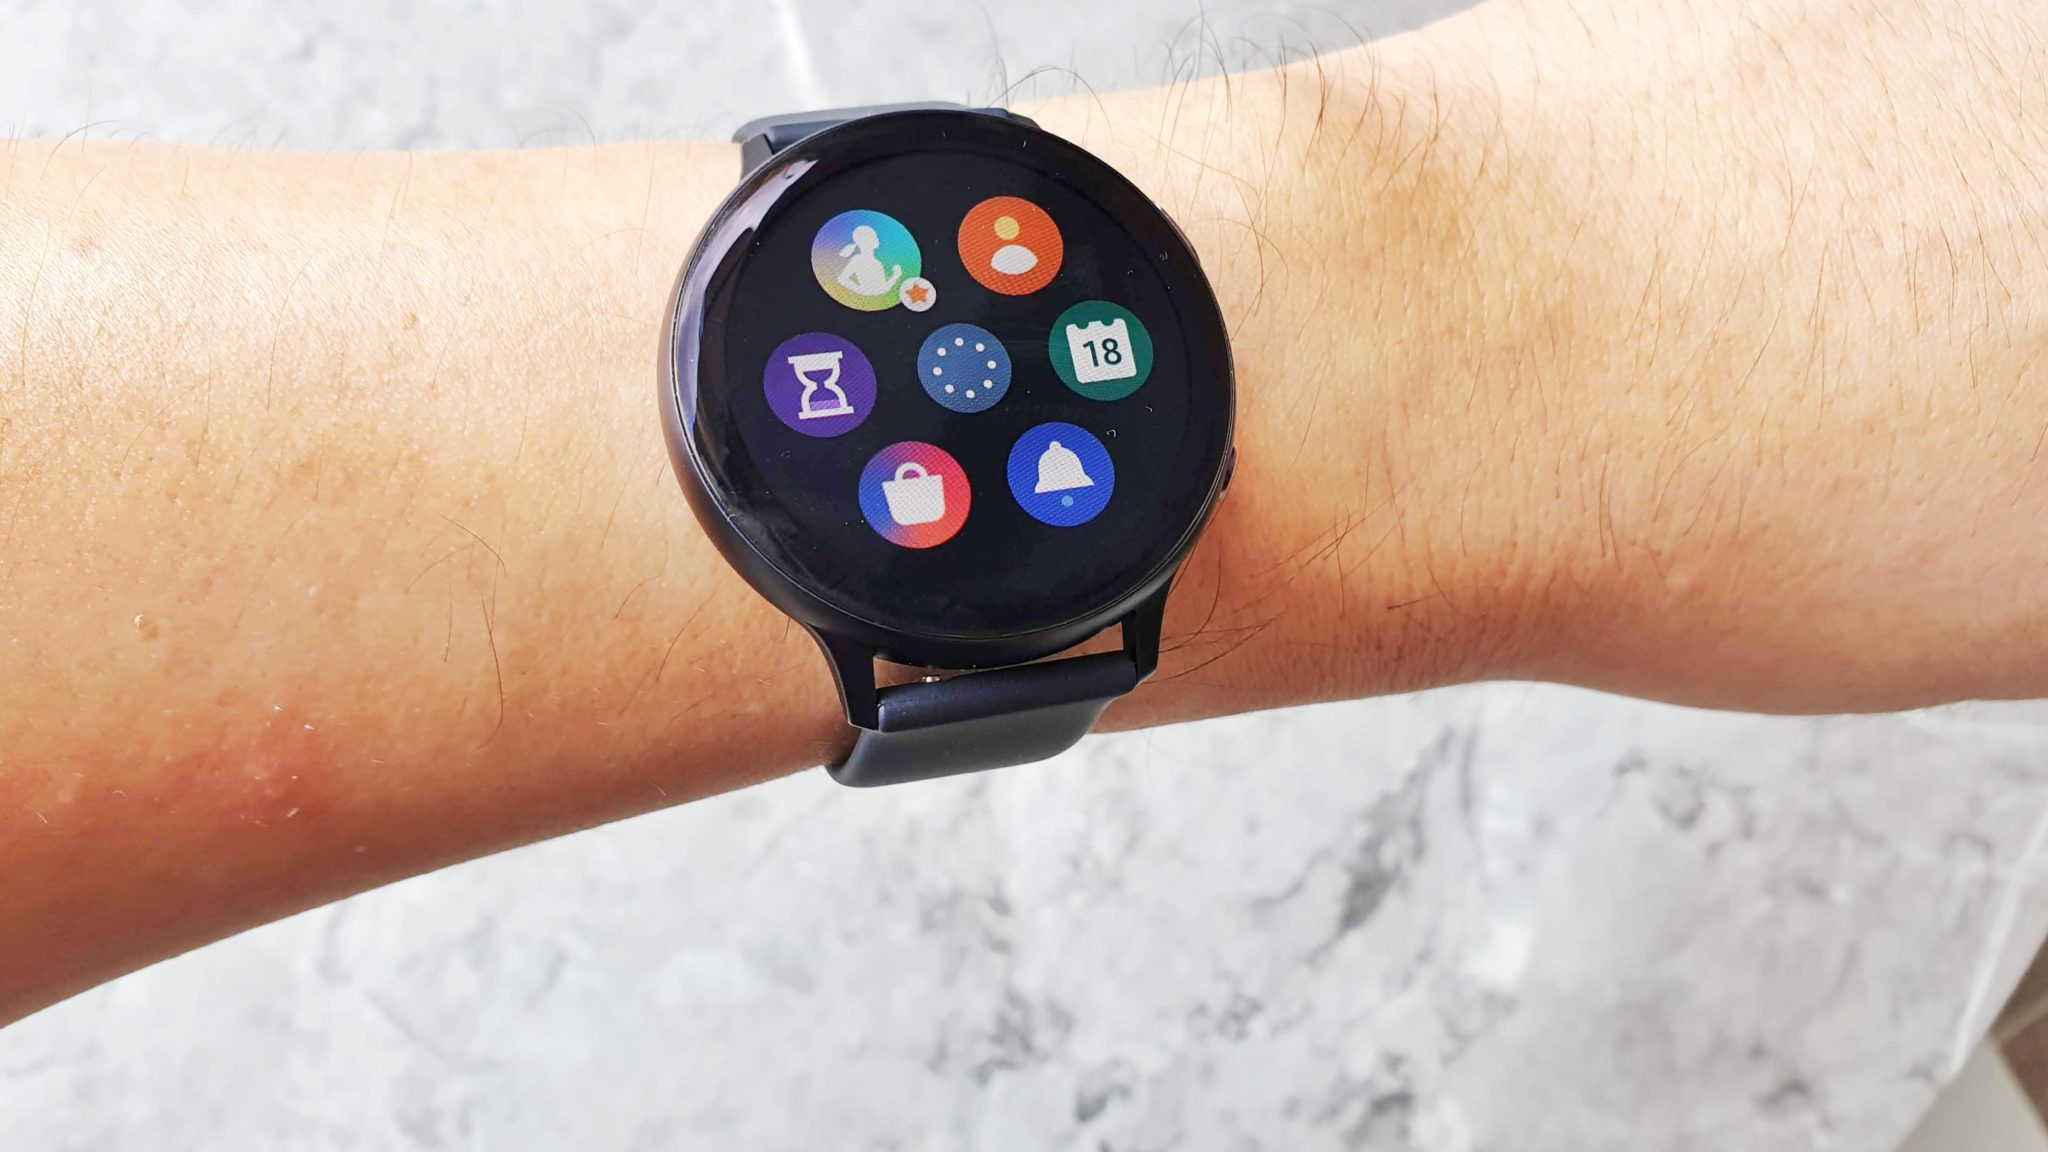 Watch Active2 apps